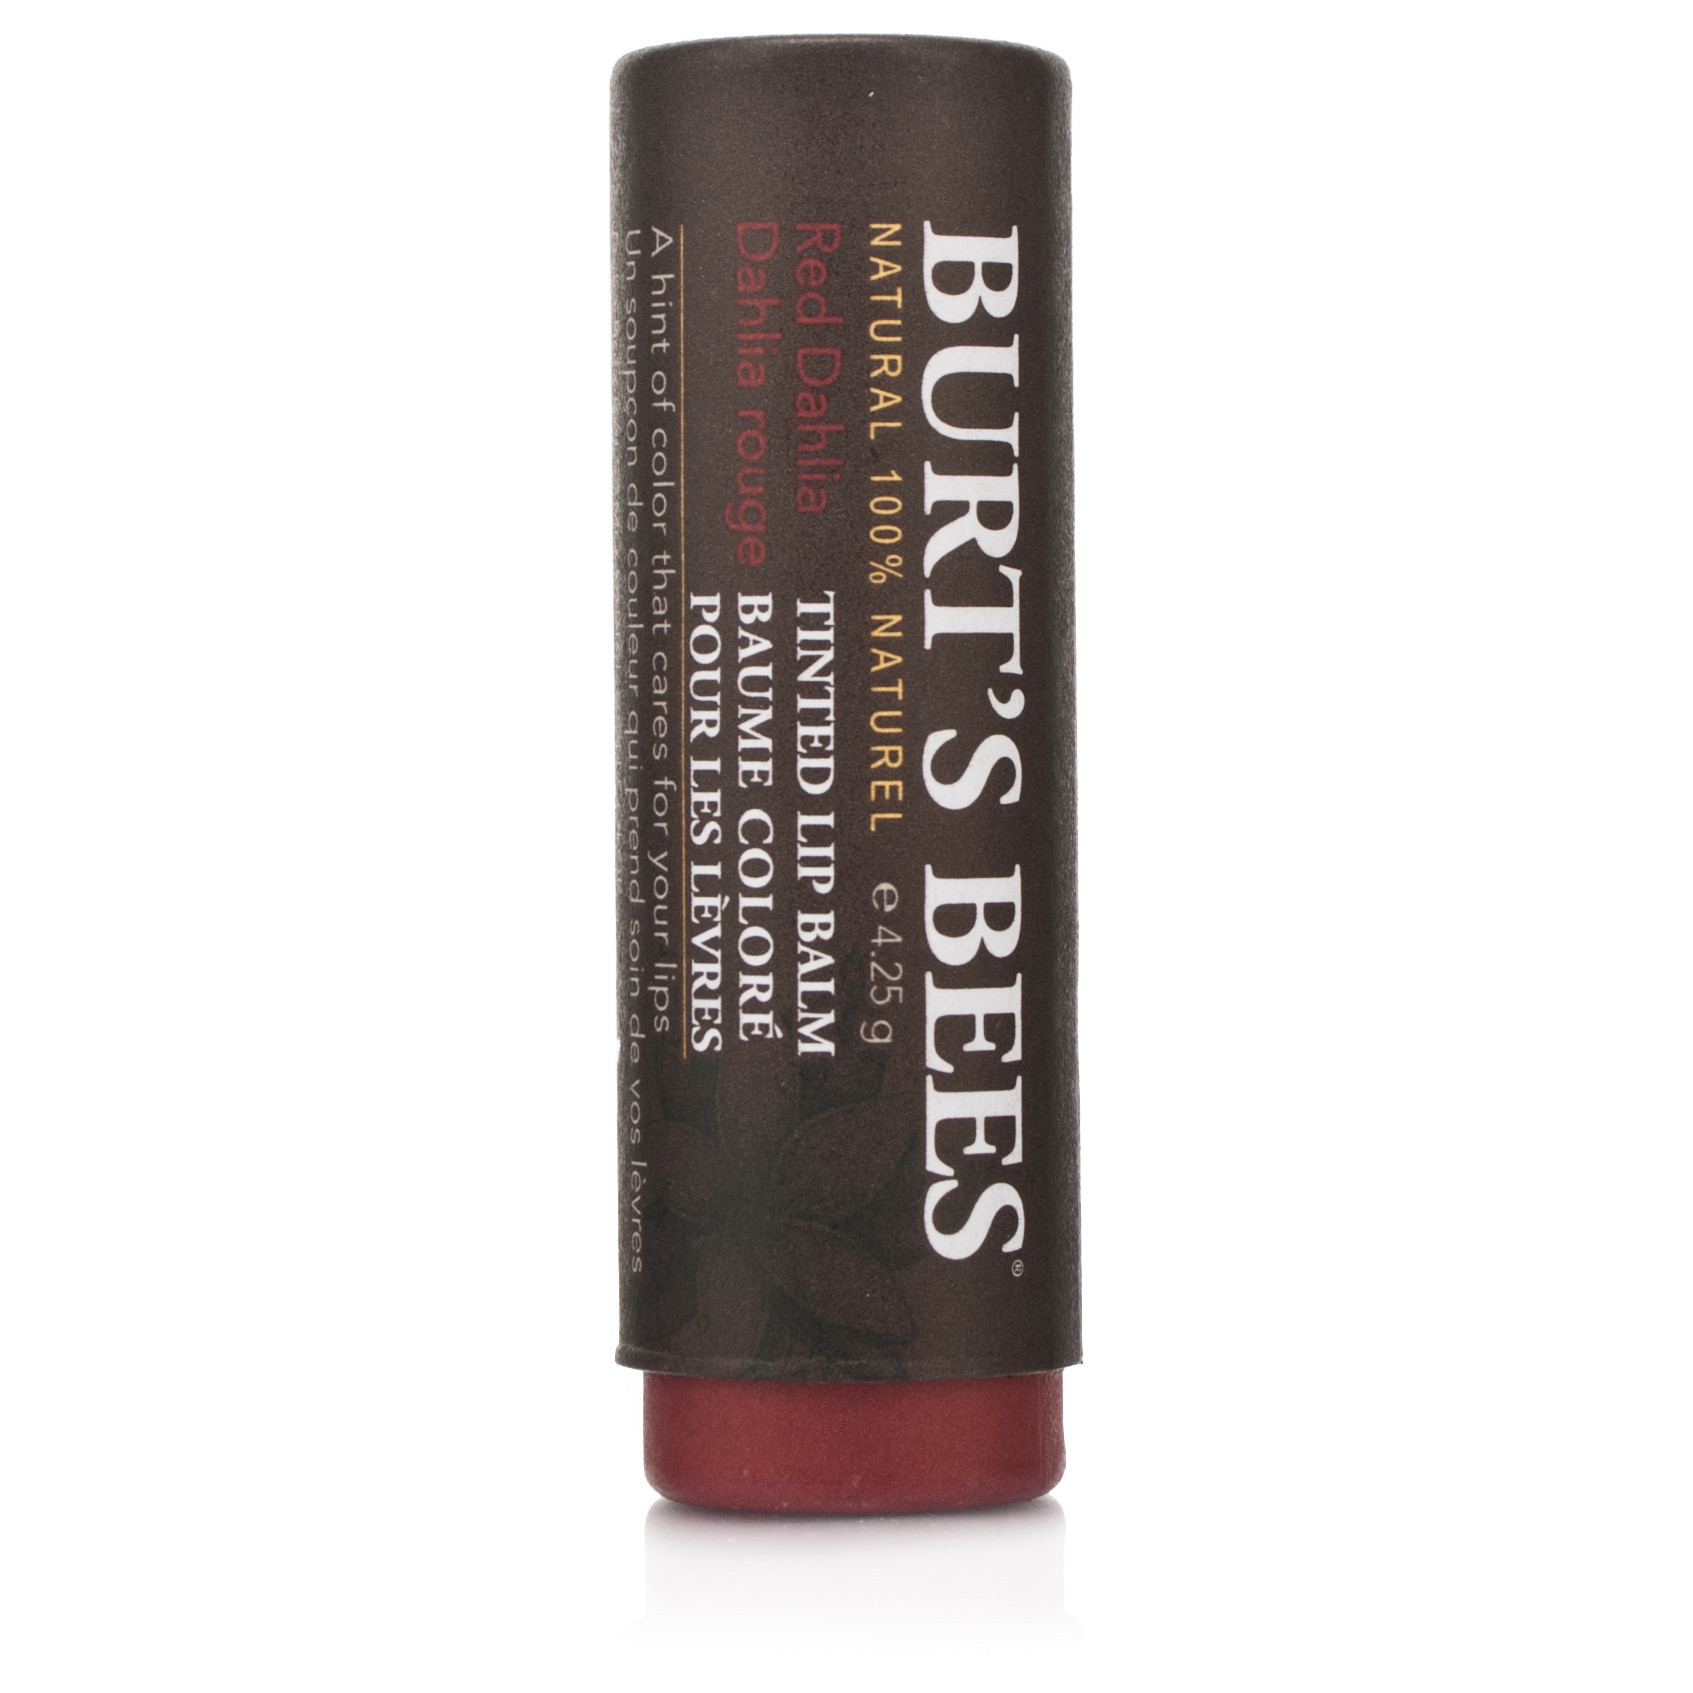 Burt's Bees Tinted Lip Balm Red Dahlia